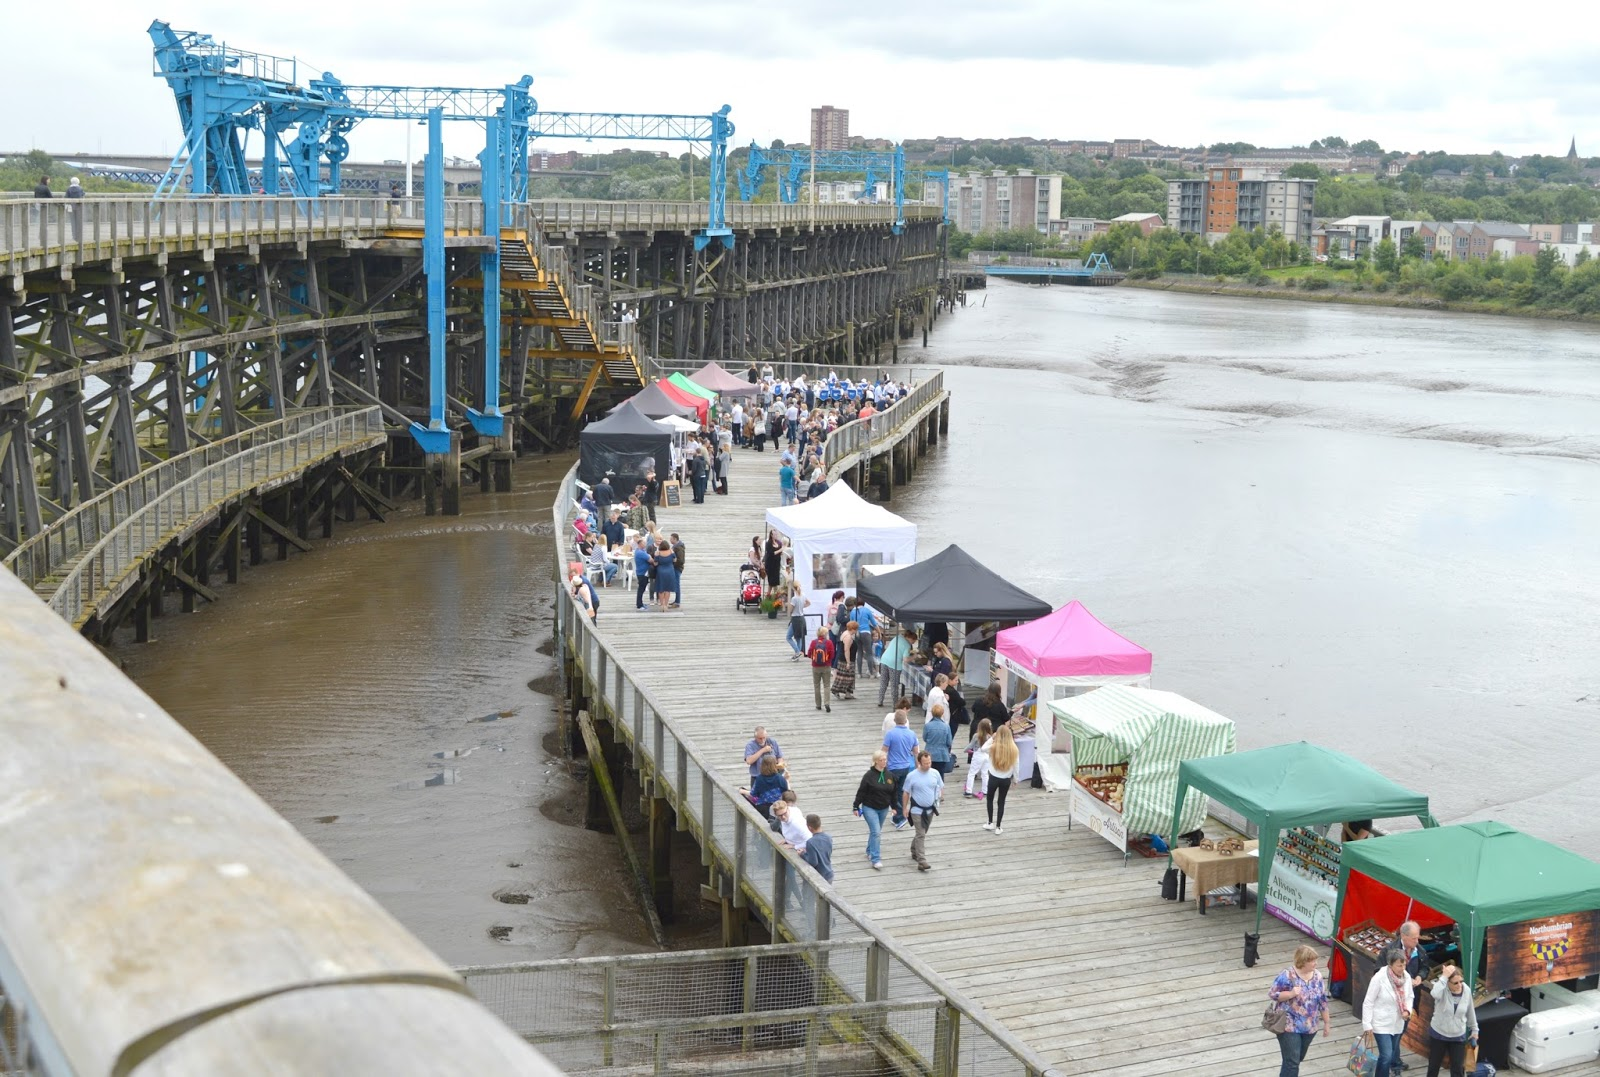 The Staiths Food Market, Dunston Staithes